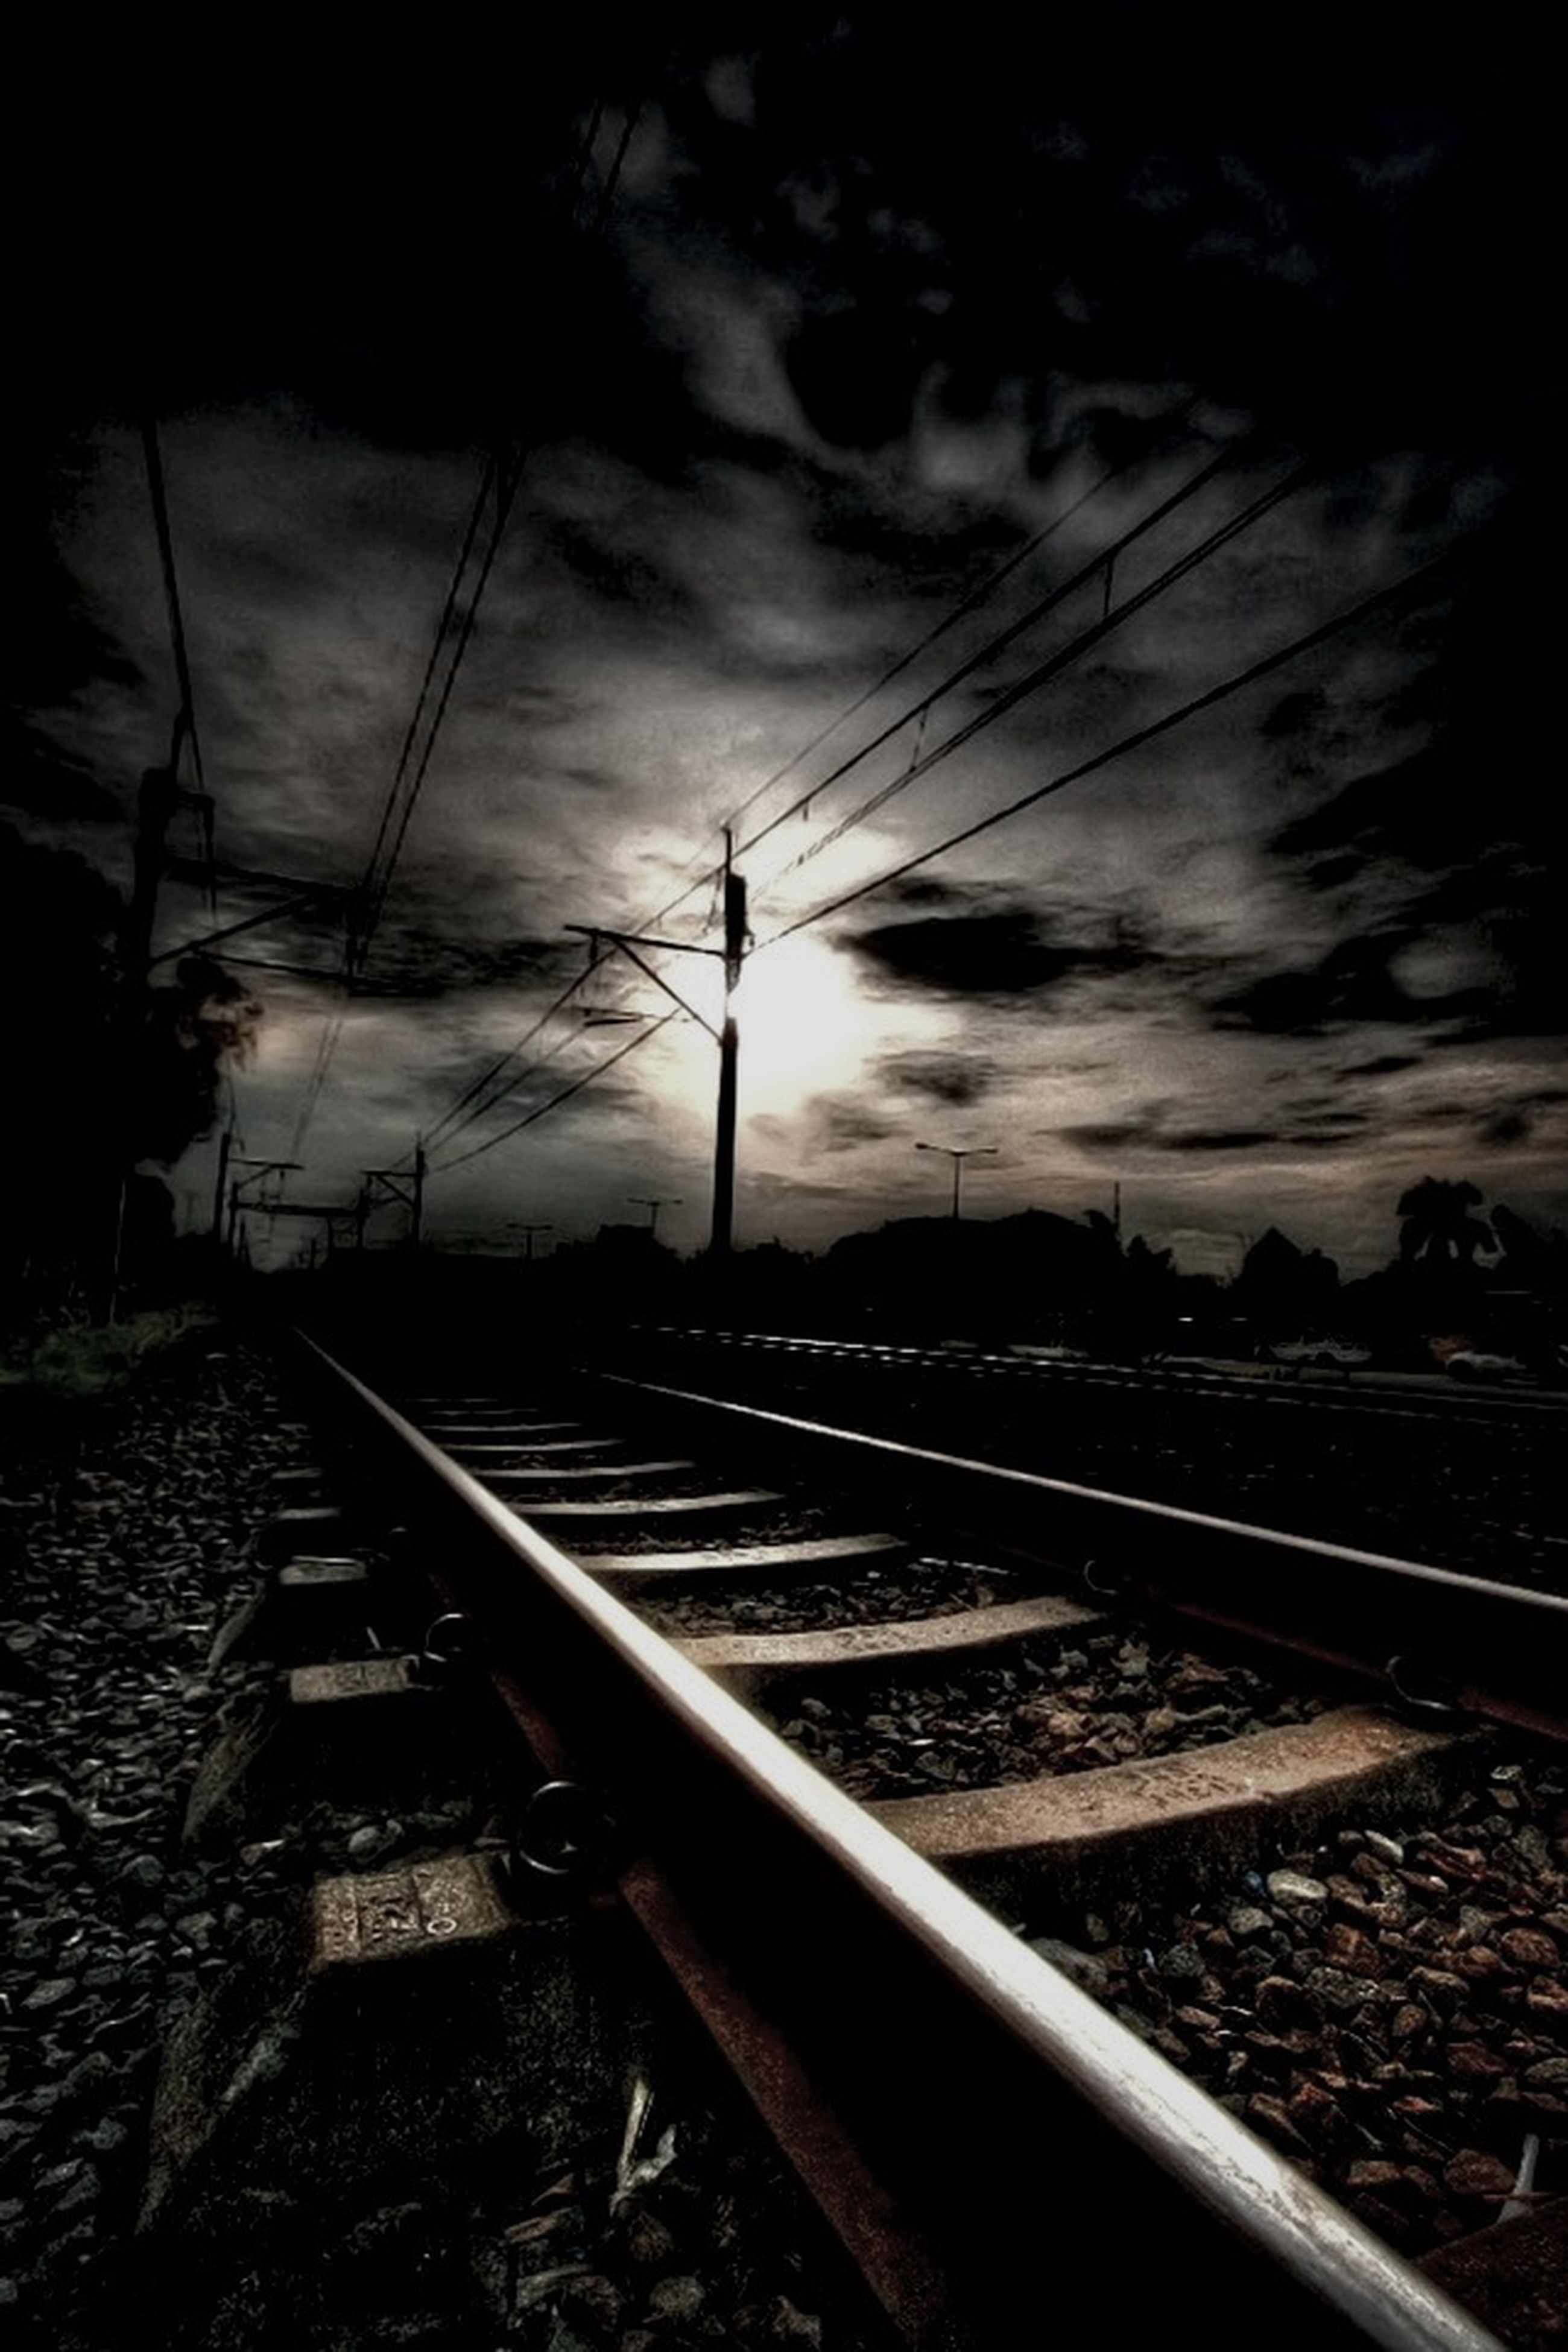 railroad track, rail transportation, sky, cloud - sky, power line, transportation, electricity pylon, public transportation, cloudy, sunset, railroad station platform, railroad station, cloud, electricity, cable, connection, railway track, power supply, diminishing perspective, outdoors